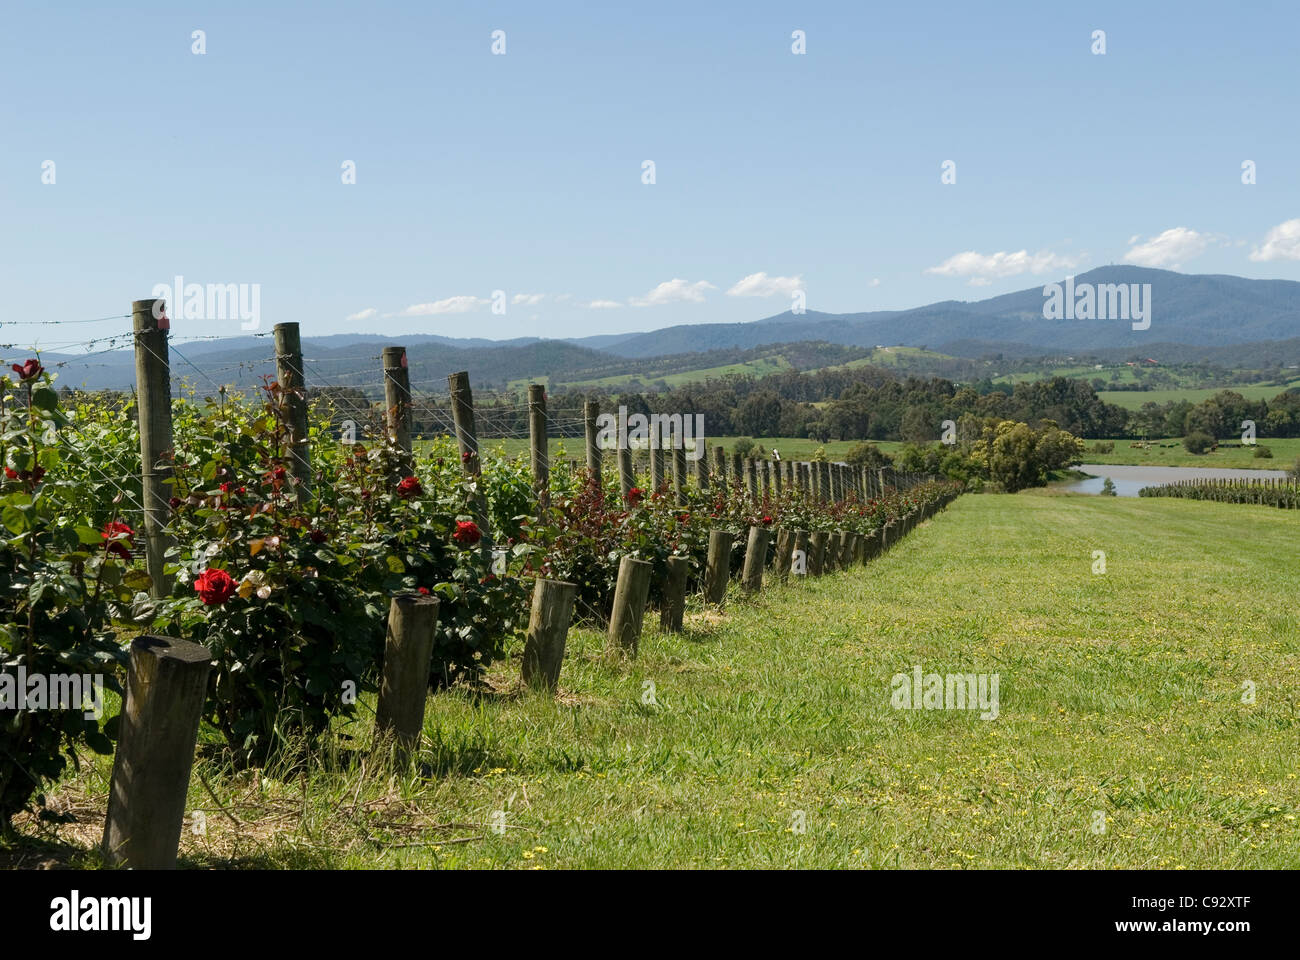 The Yarra Valley is host to a thriving wine growing industry and near the major market of Melbourne. - Stock Image